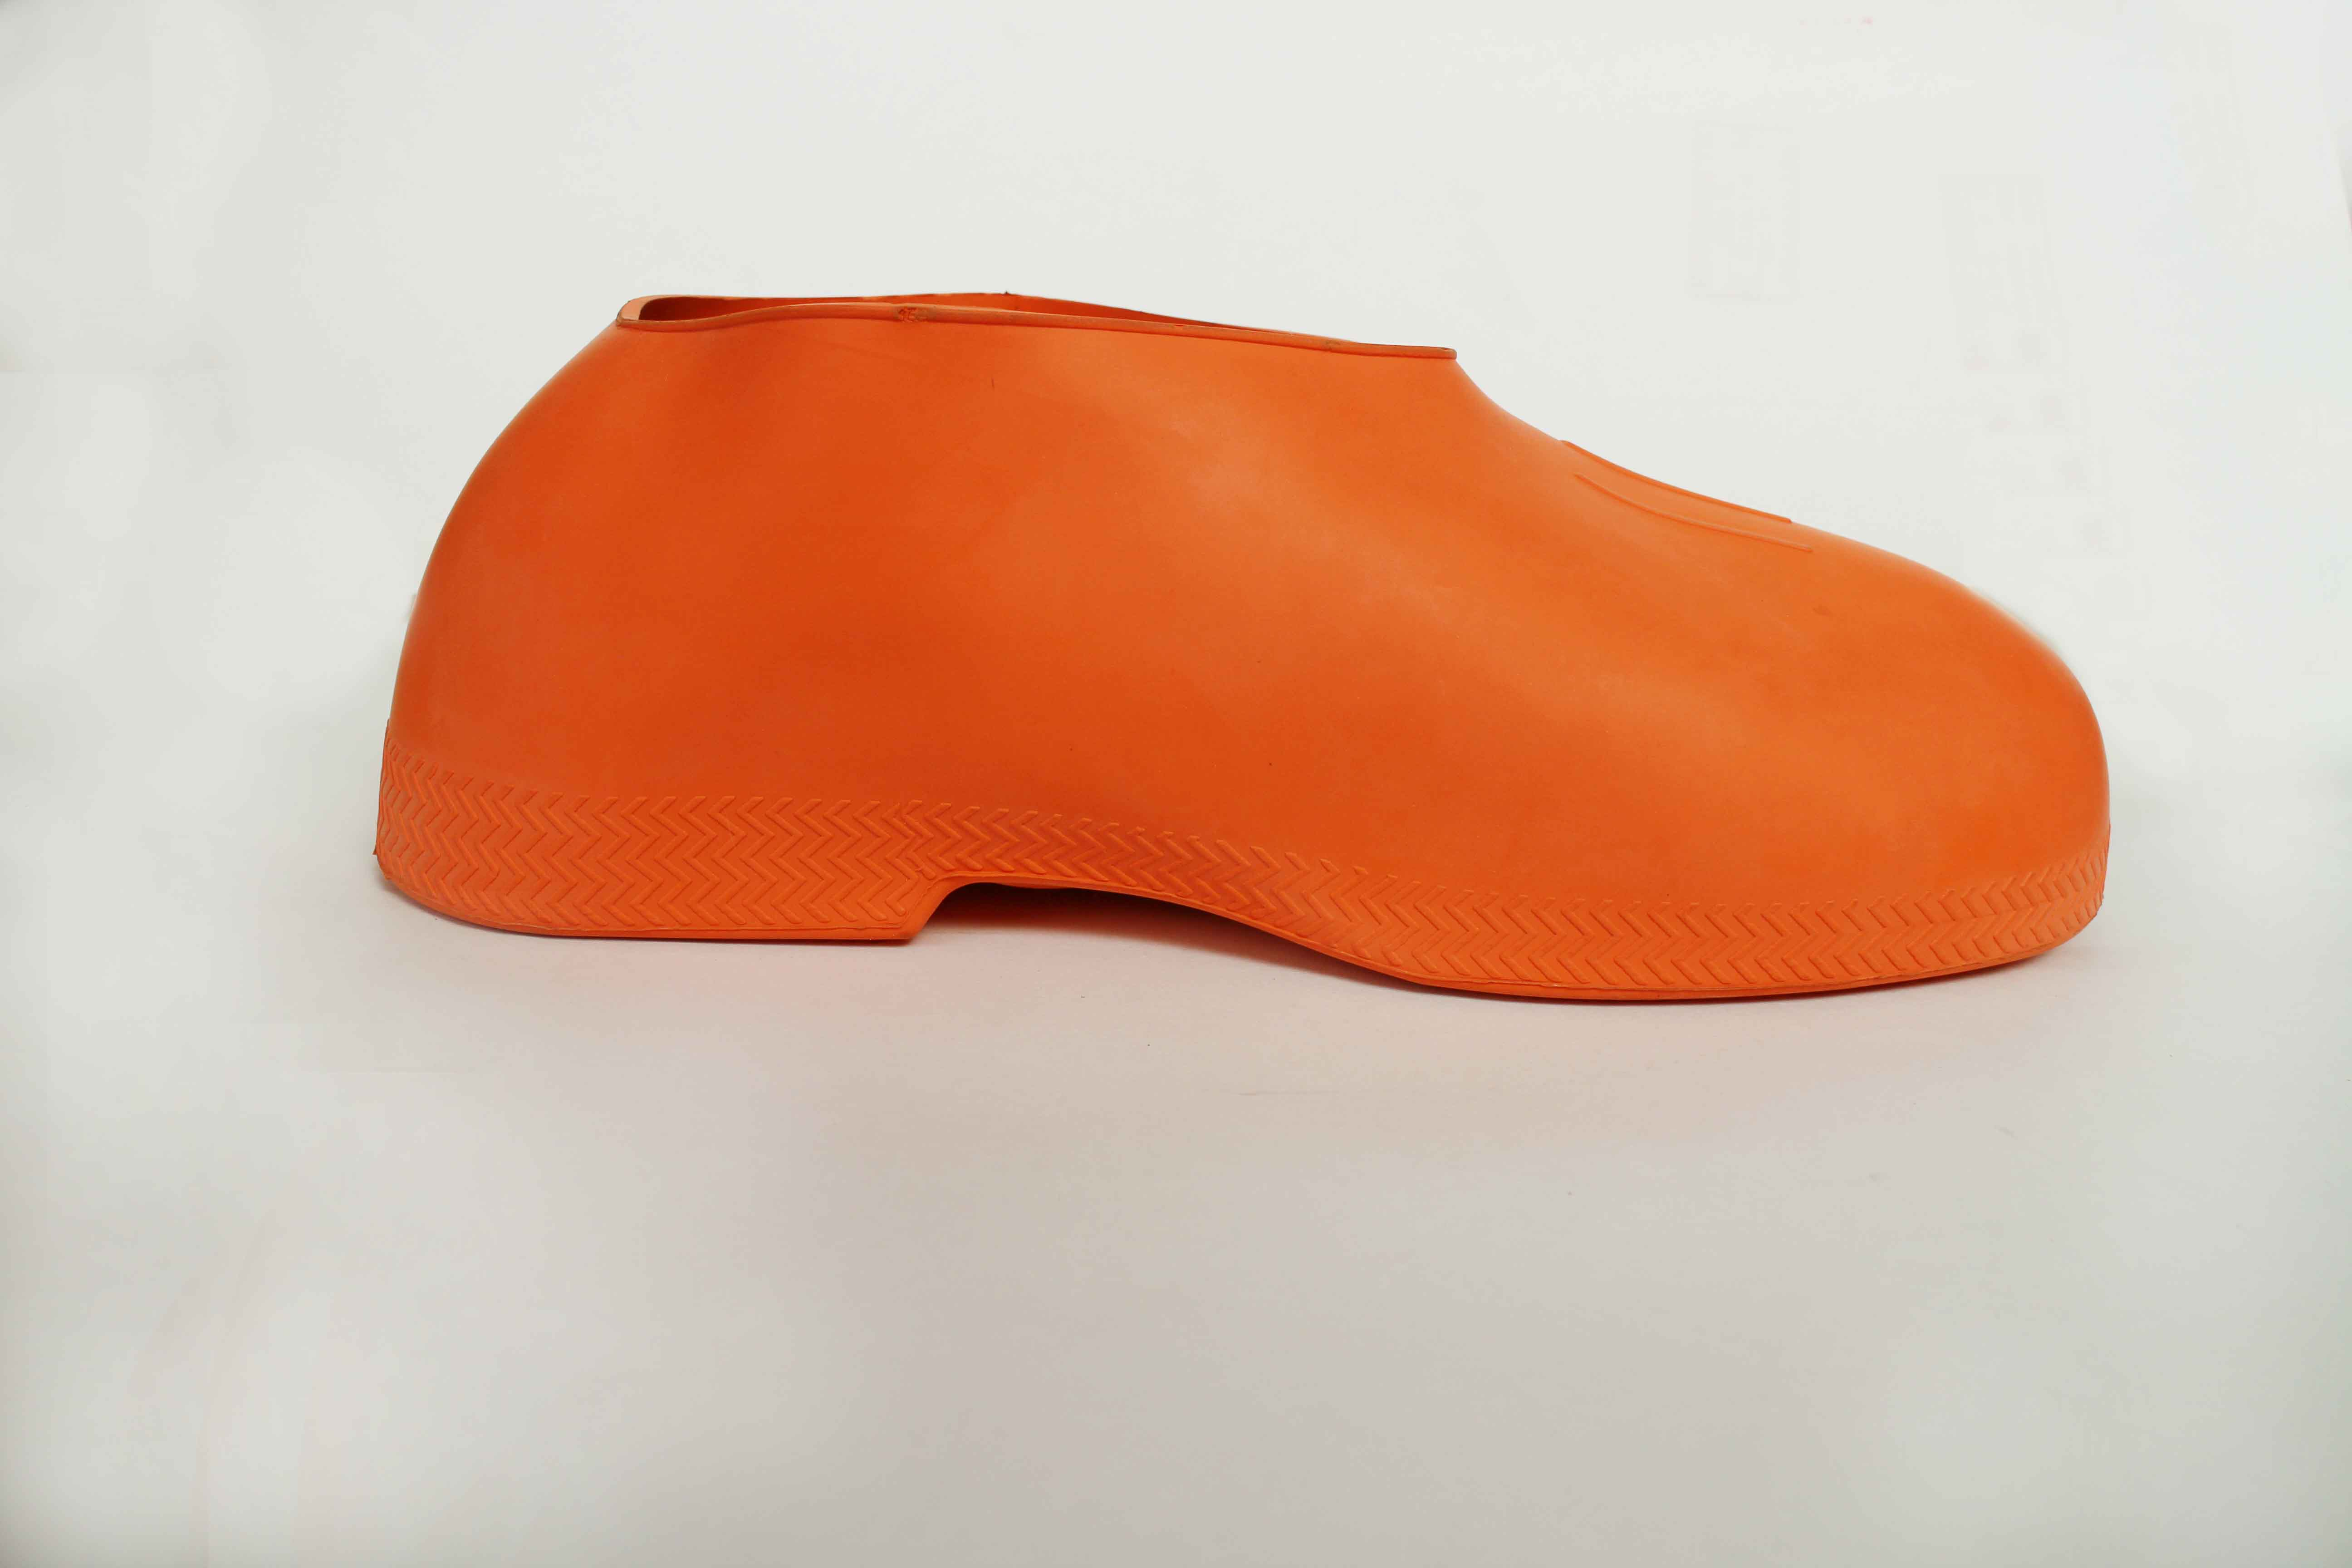 Factory wholesale price for Rubber shoe cover sale to Zambia